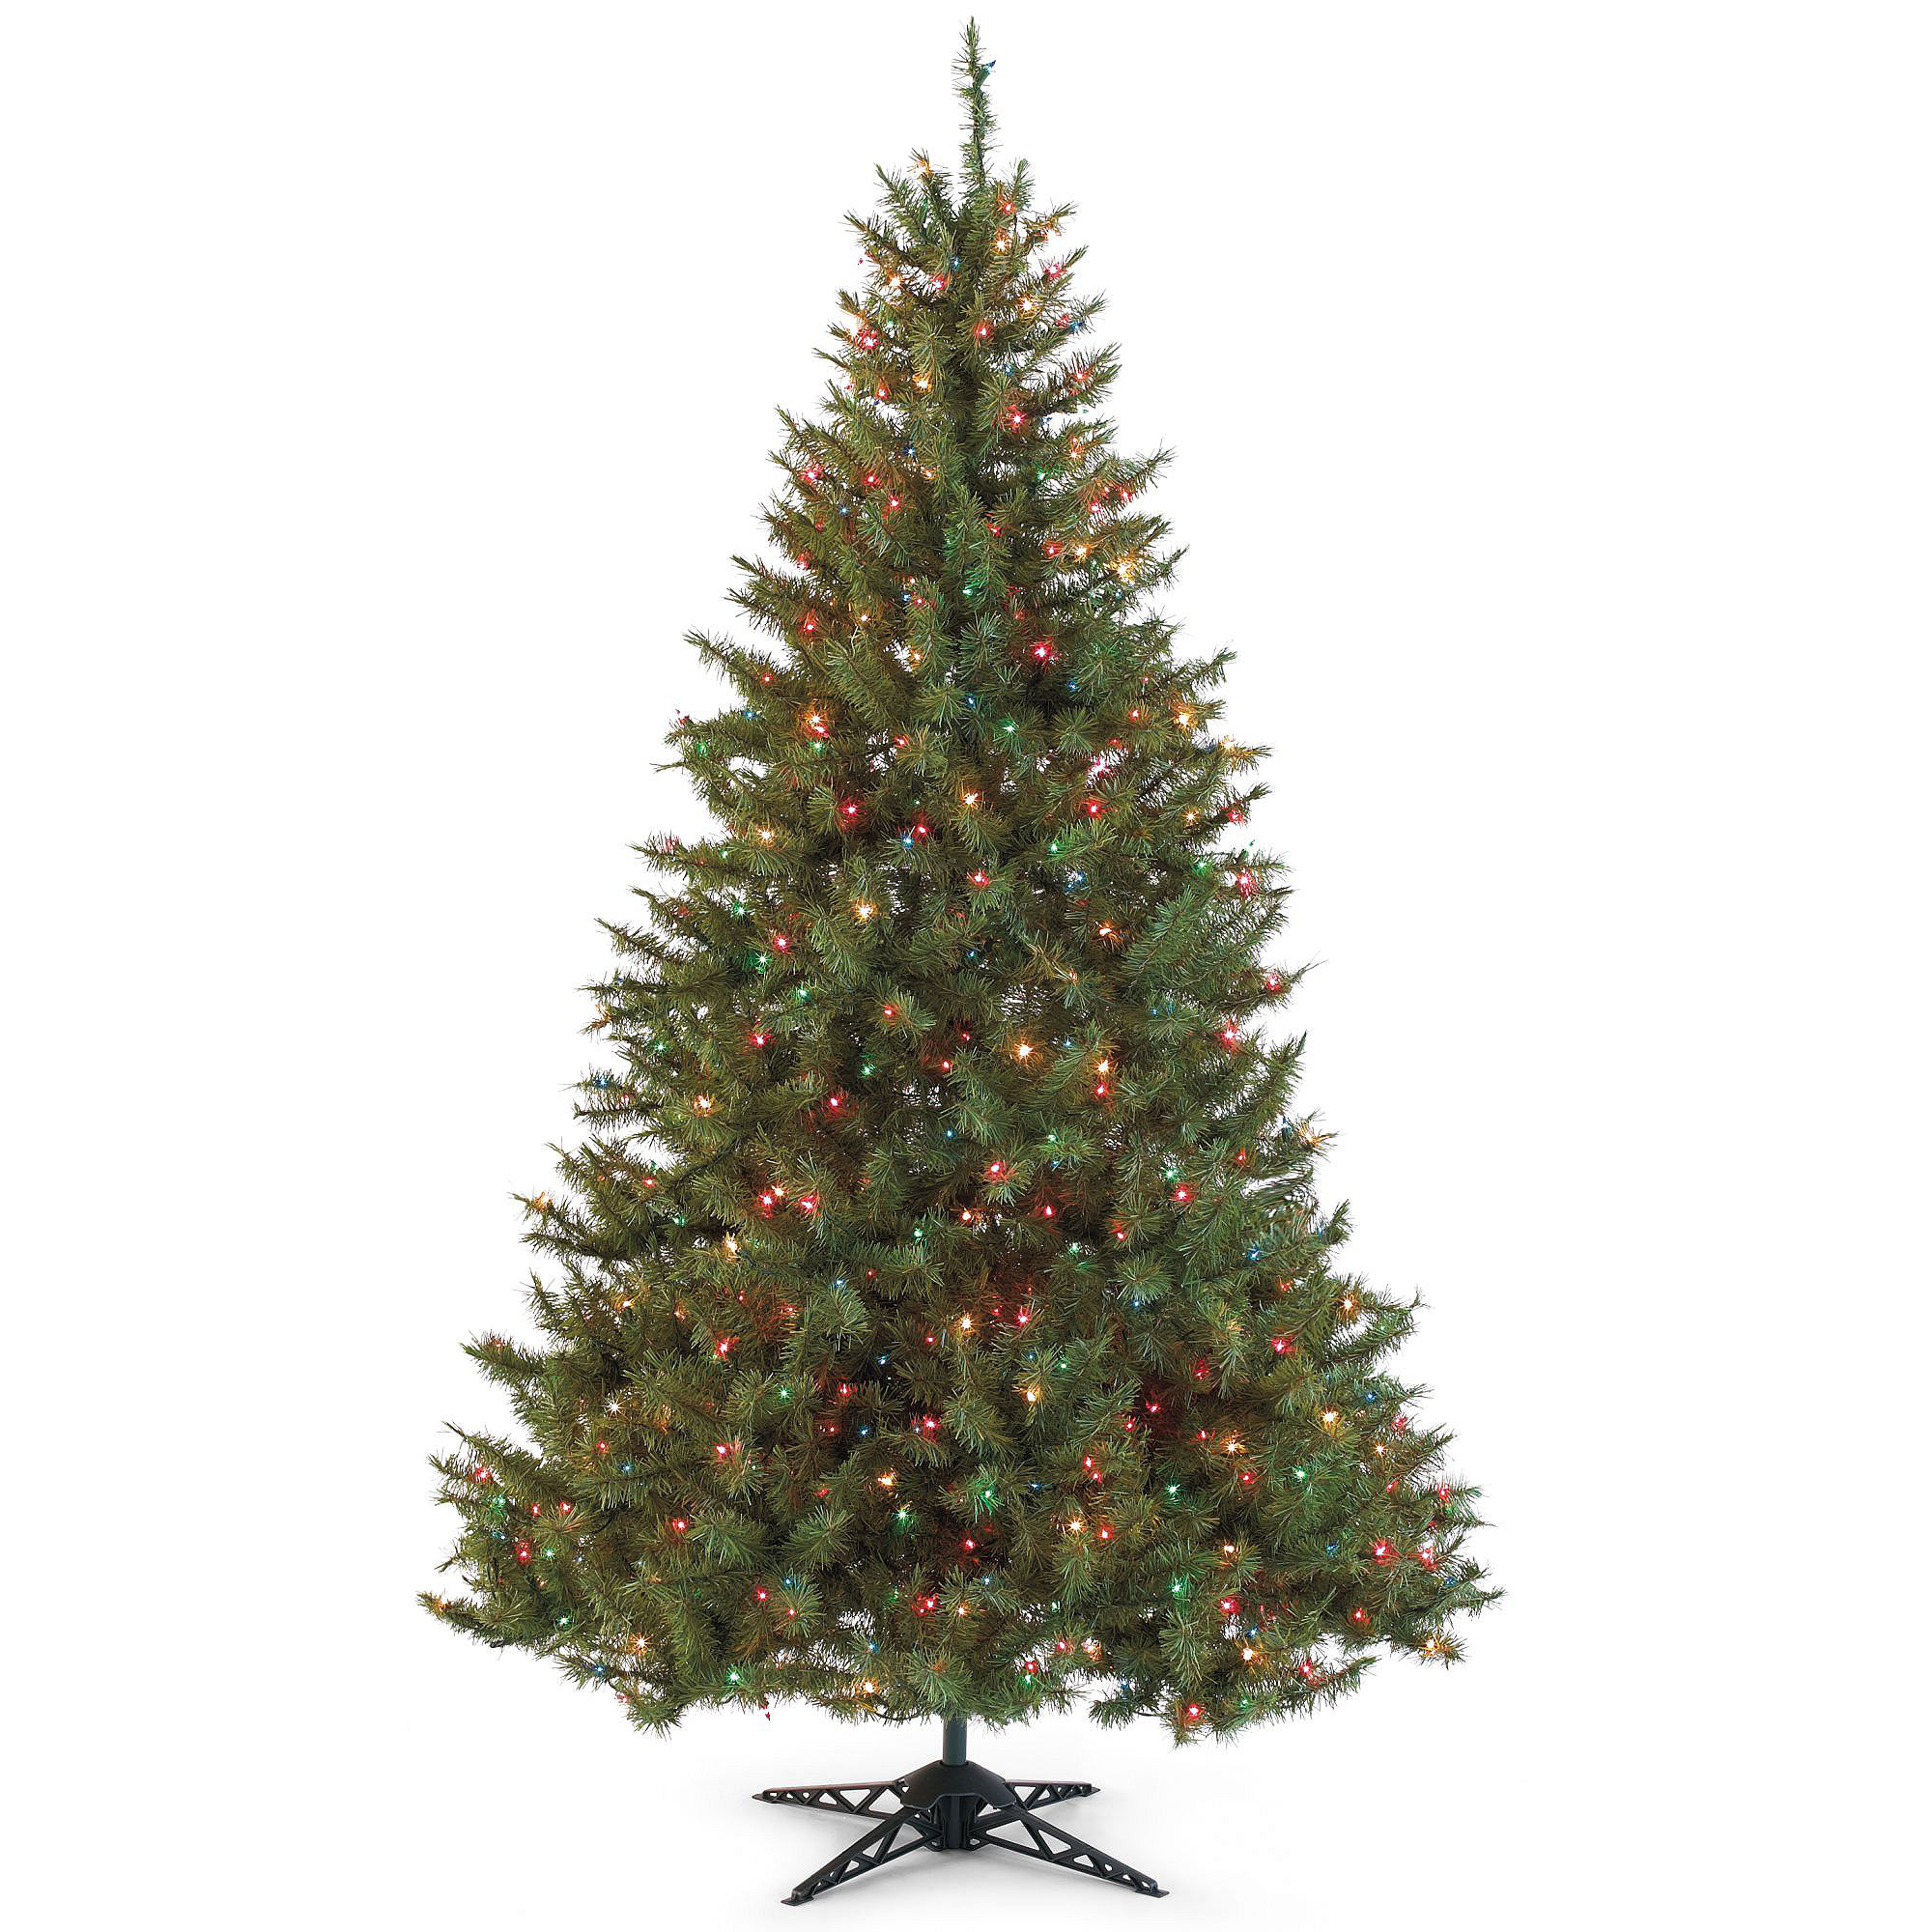 Jc Penney Christmas Trees: Buy 9 Ft Artificial Christmas